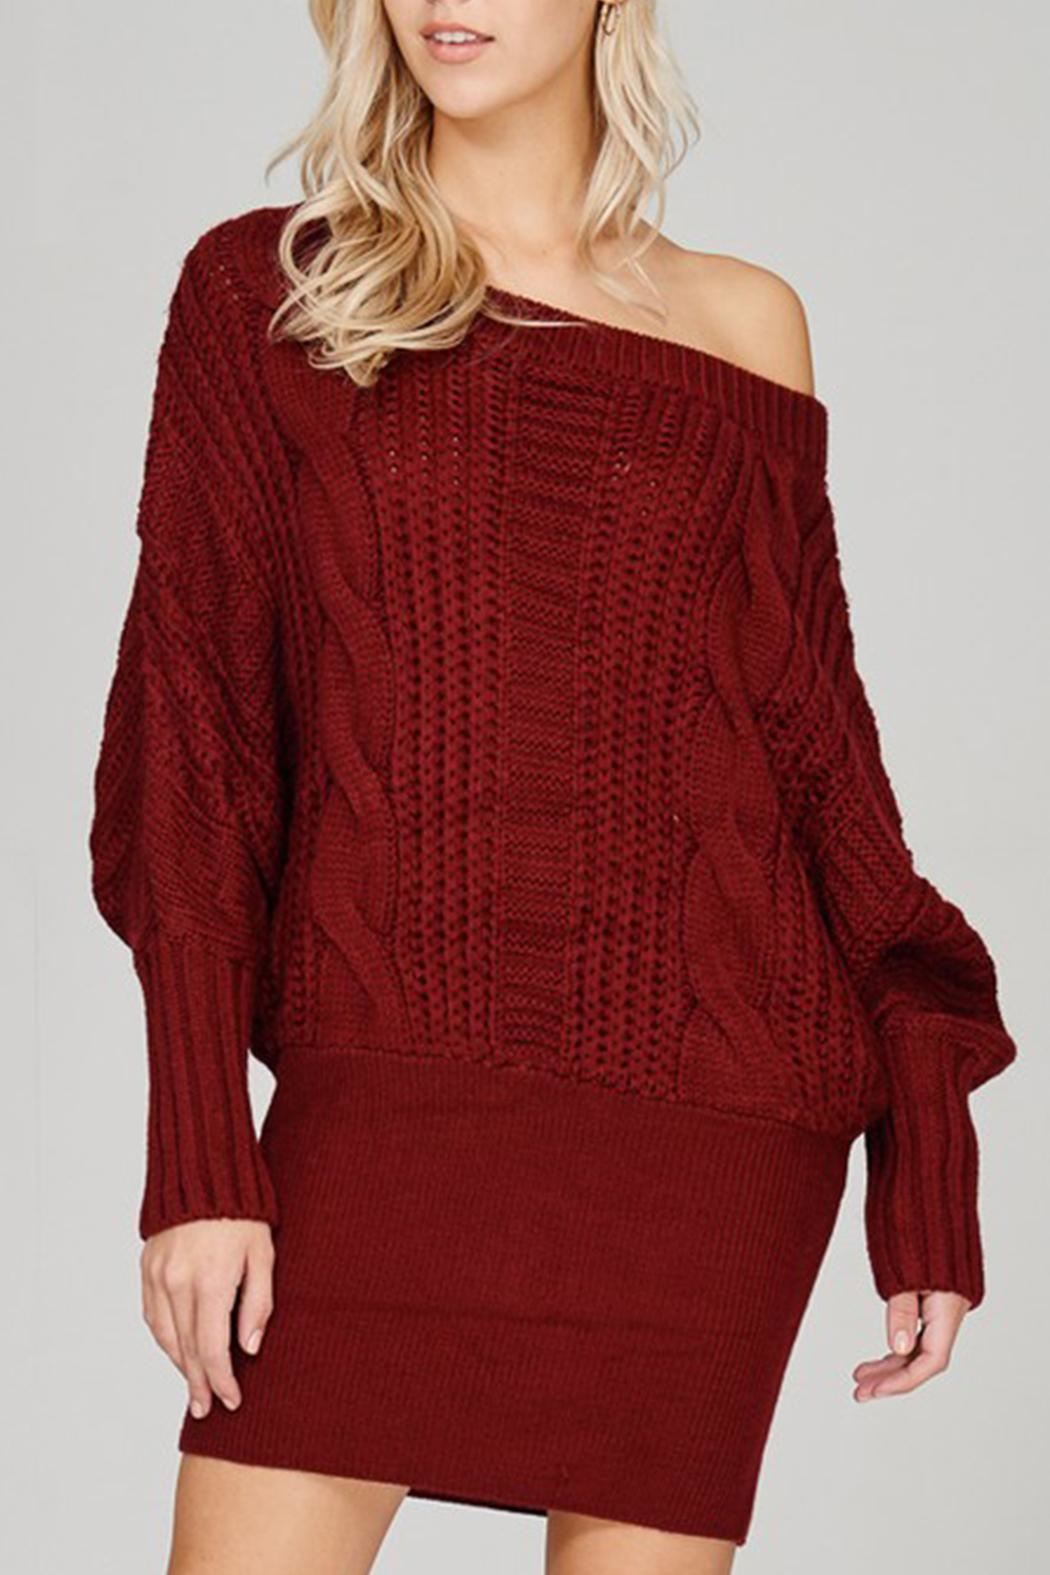 Main Strip Cable-Knit Sweater Mini-Dress - Front Full Image